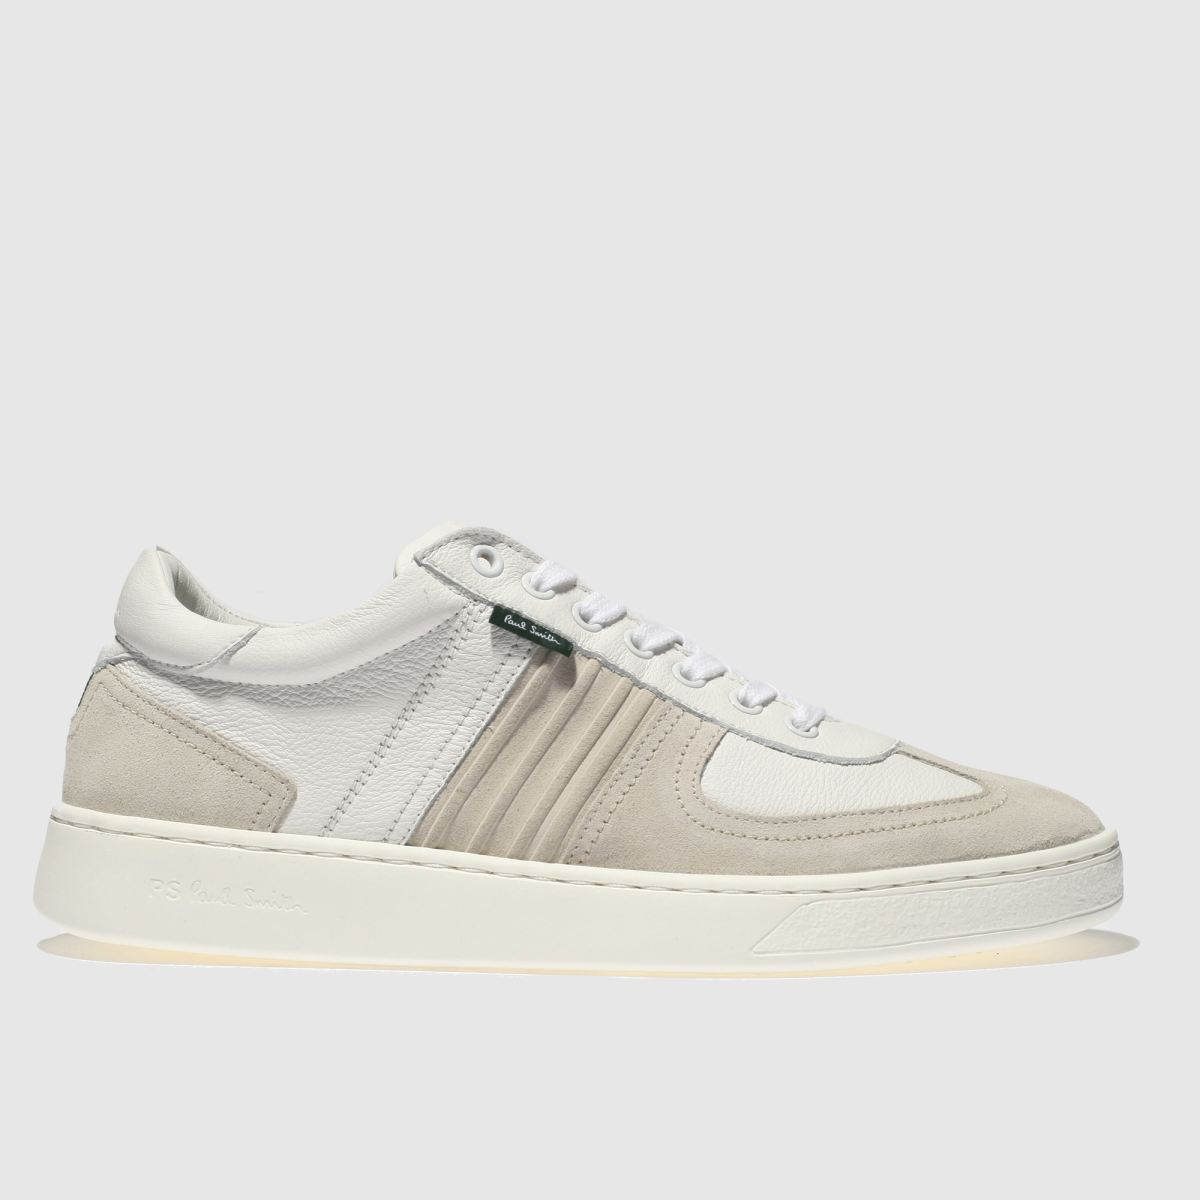 paul smith shoe ps Paul Smith Shoe Ps White Reemo Trainers